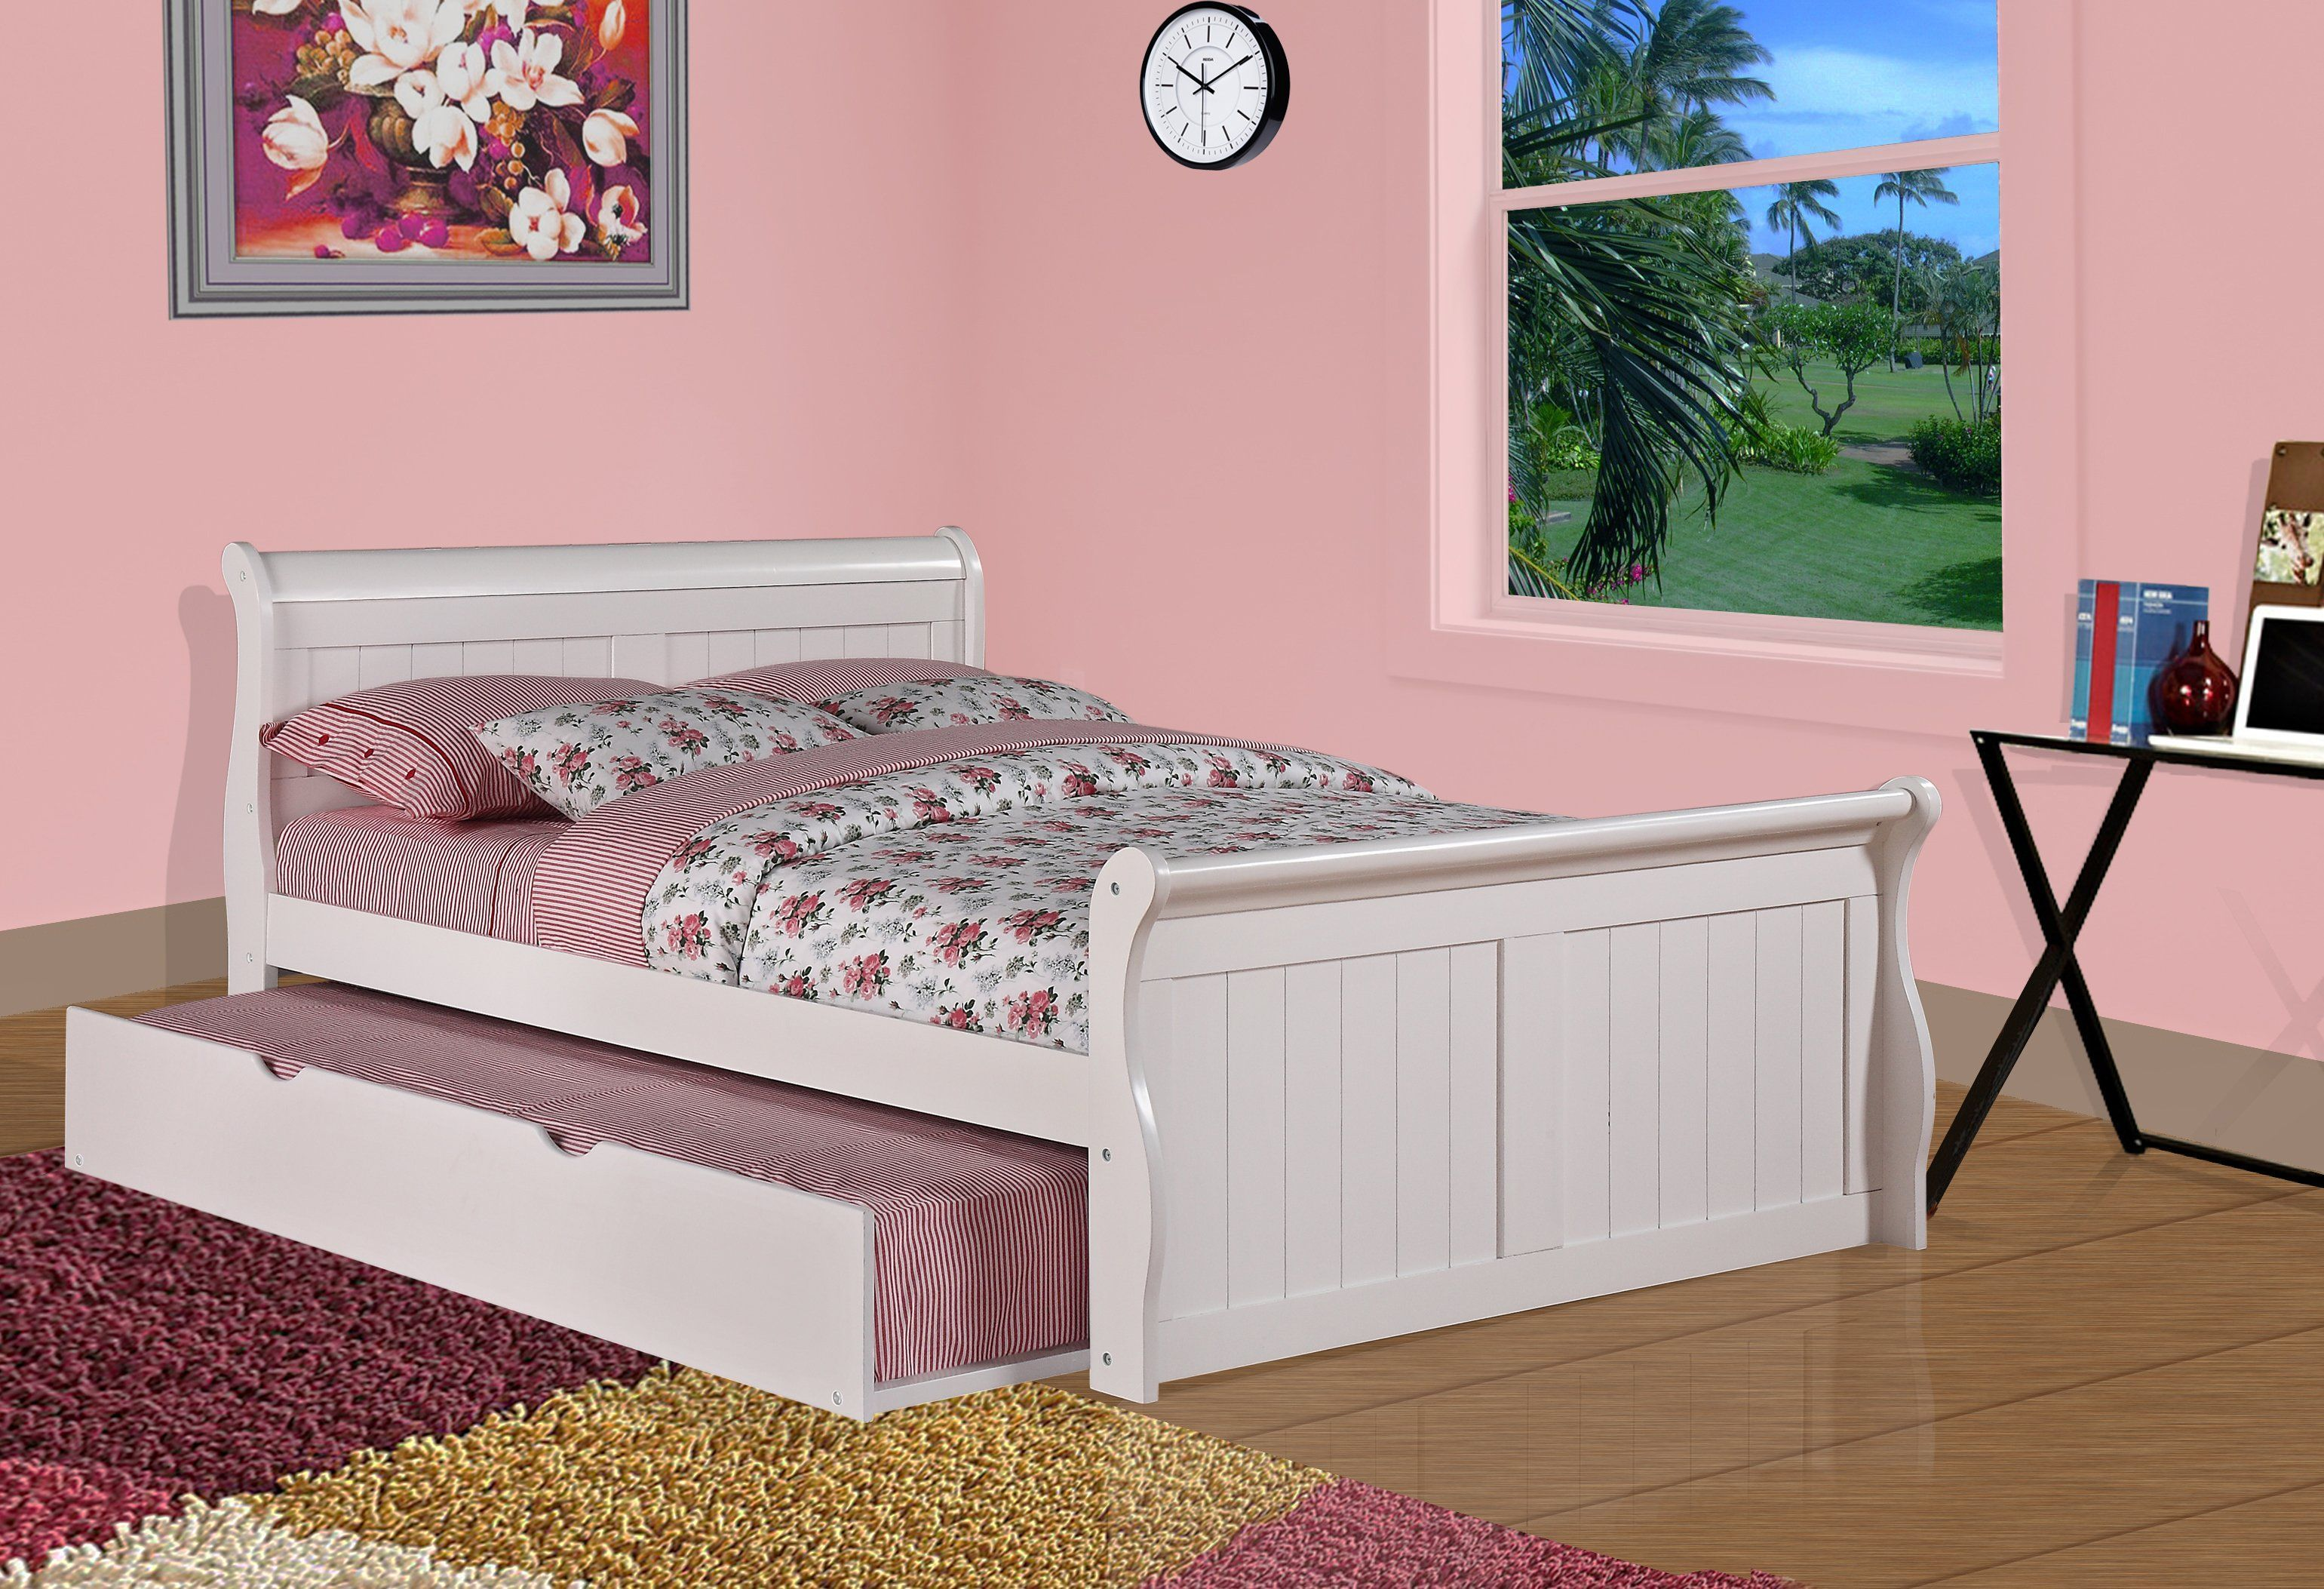 Donco Kids White Pine Wood Full Sleigh Bed with Trundle or